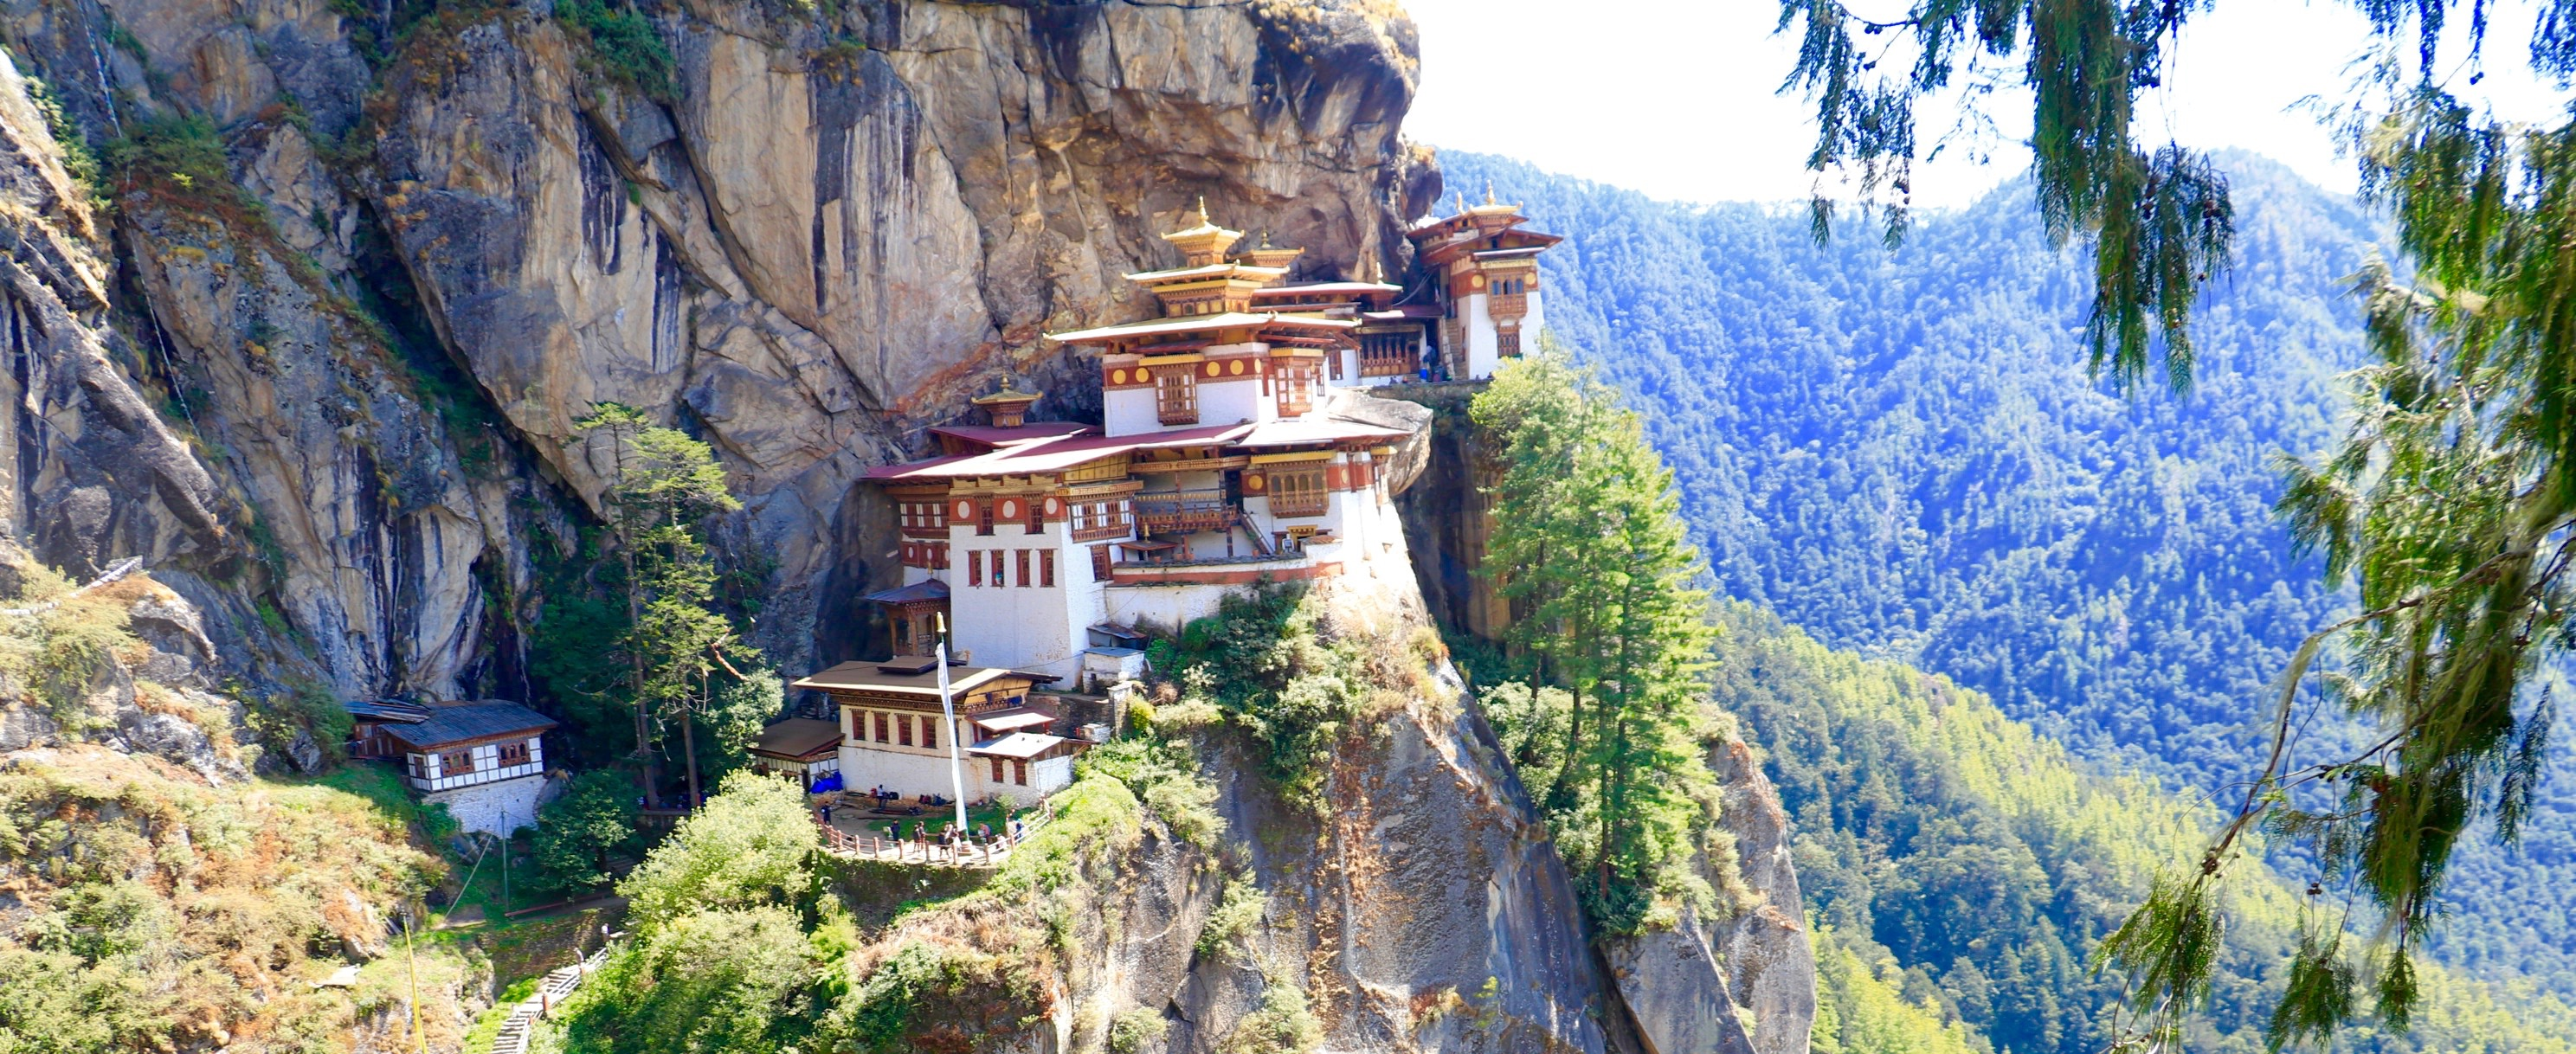 Taktshang Lhakhang – Tiger's Nest Monastery  – A Day Hike in Paro